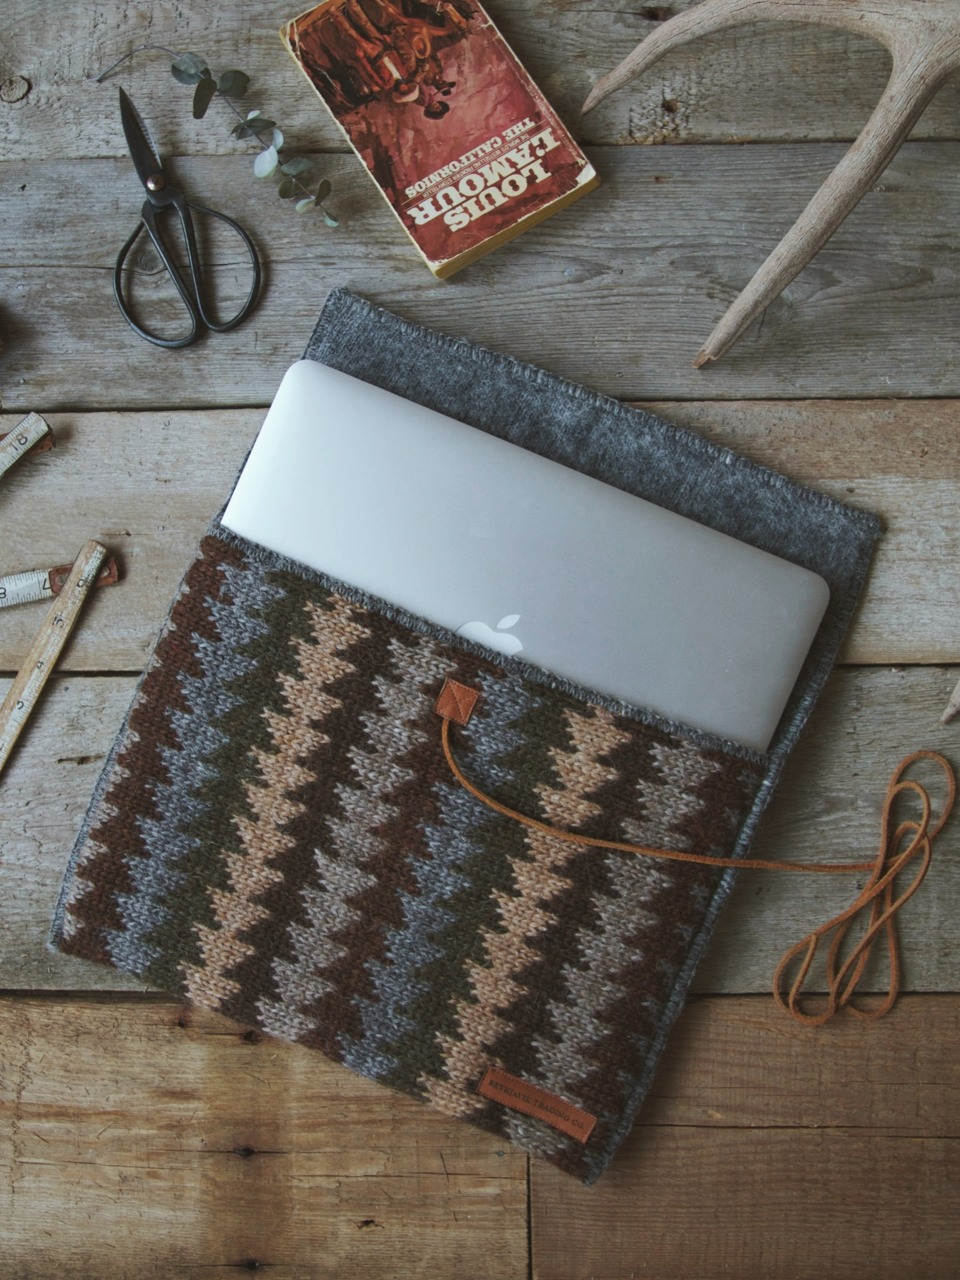 Last year we only made smaller private order batches of our Icelandic Wool MacBook Sleeves, but since they've been doing so well & people around the world have been wanting them, we're releasing them for purchase through us & at selected online/ brick & mortar shops very soon!